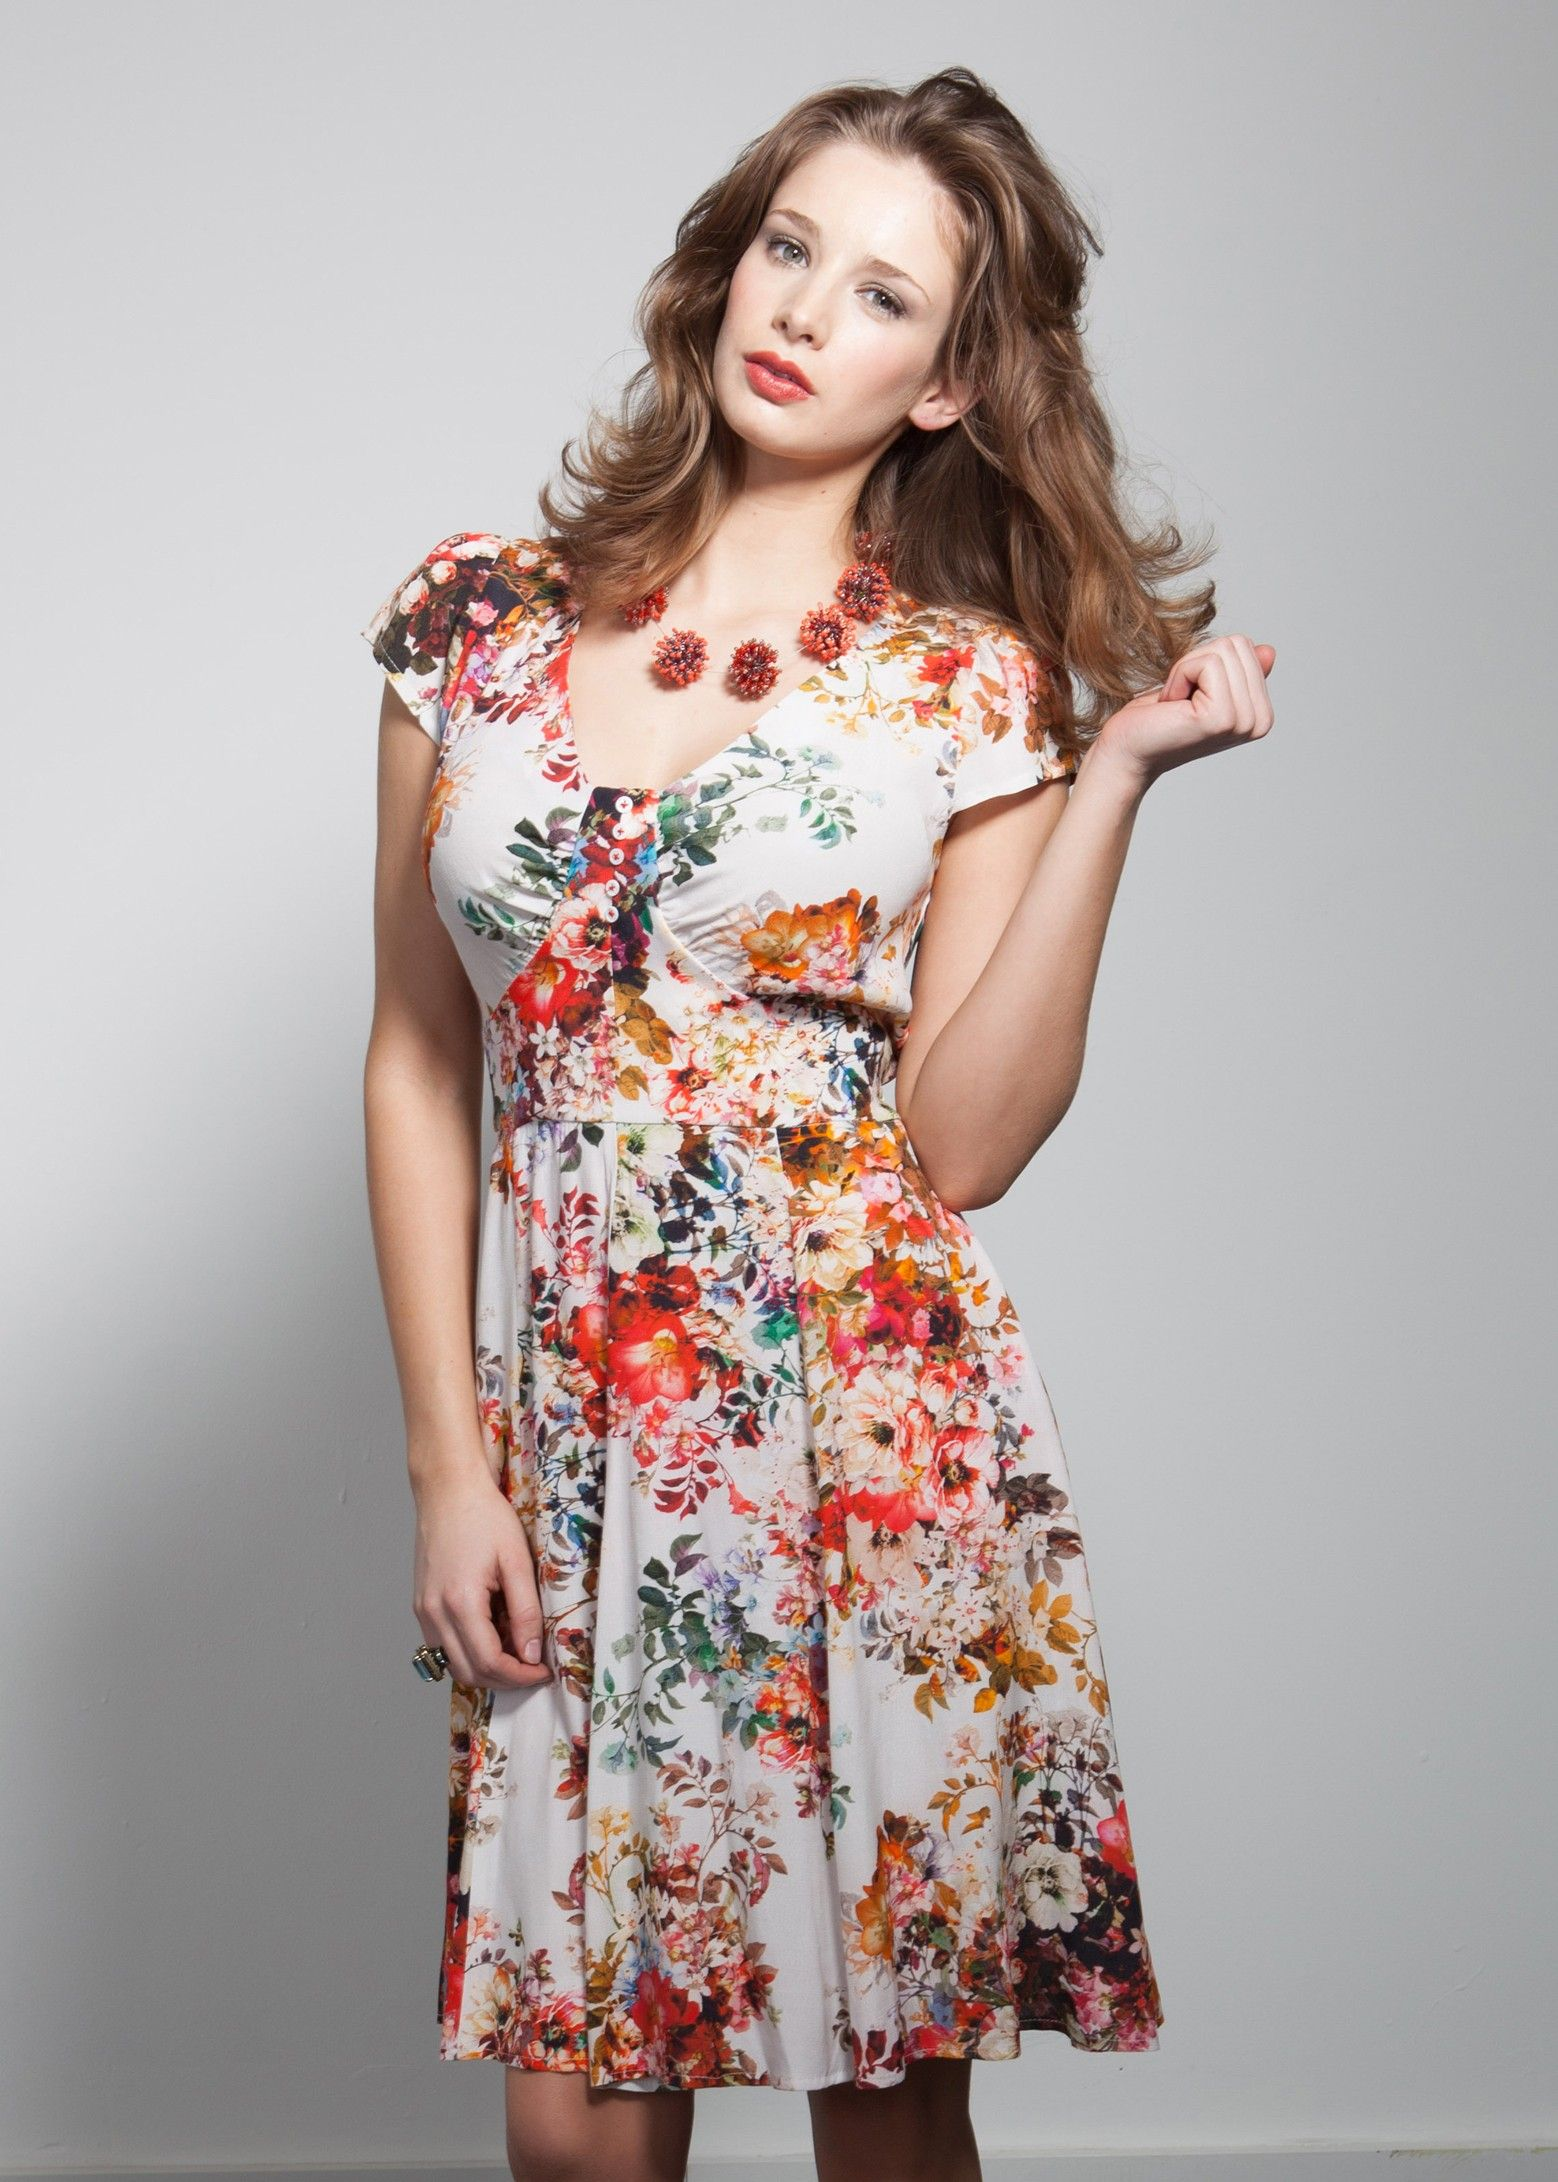 Tea Dress With Bust Ruching New In At Saint Bustier For Women With D To H Cups Tea Dress Dresses New Dress [ 2182 x 1558 Pixel ]